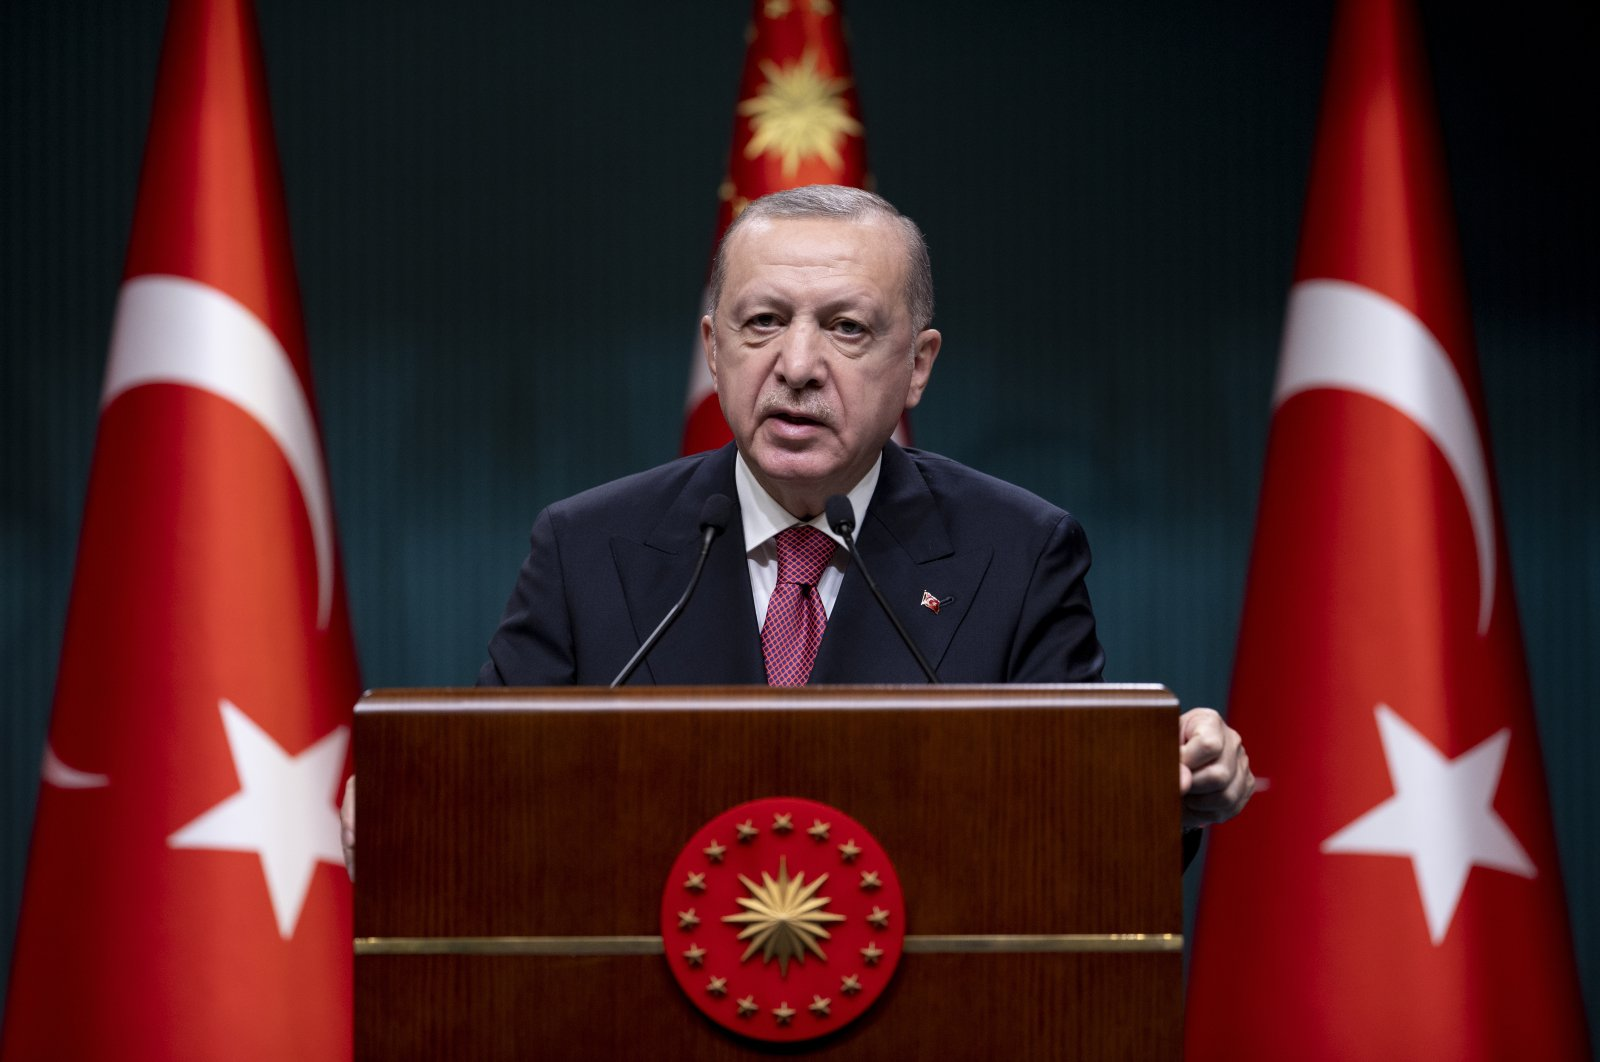 President Recep Tayyip Erdoğan speaks during a press conference at the Presidential Complex in Ankara, Turkey, May 31, 2021 (AA Photo)